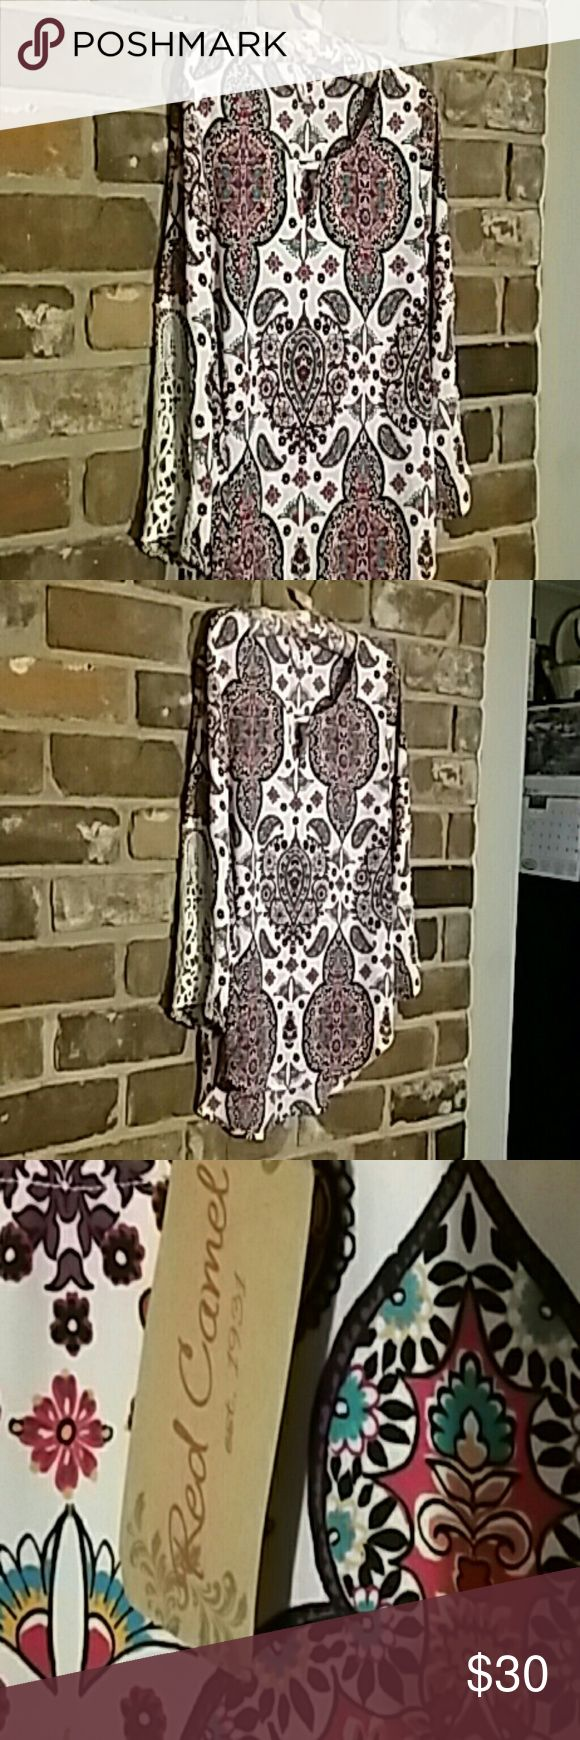 Multi color Blouse Playful peasant blouse new with tags.  Great for casual dressing Red Camel Tops Blouses